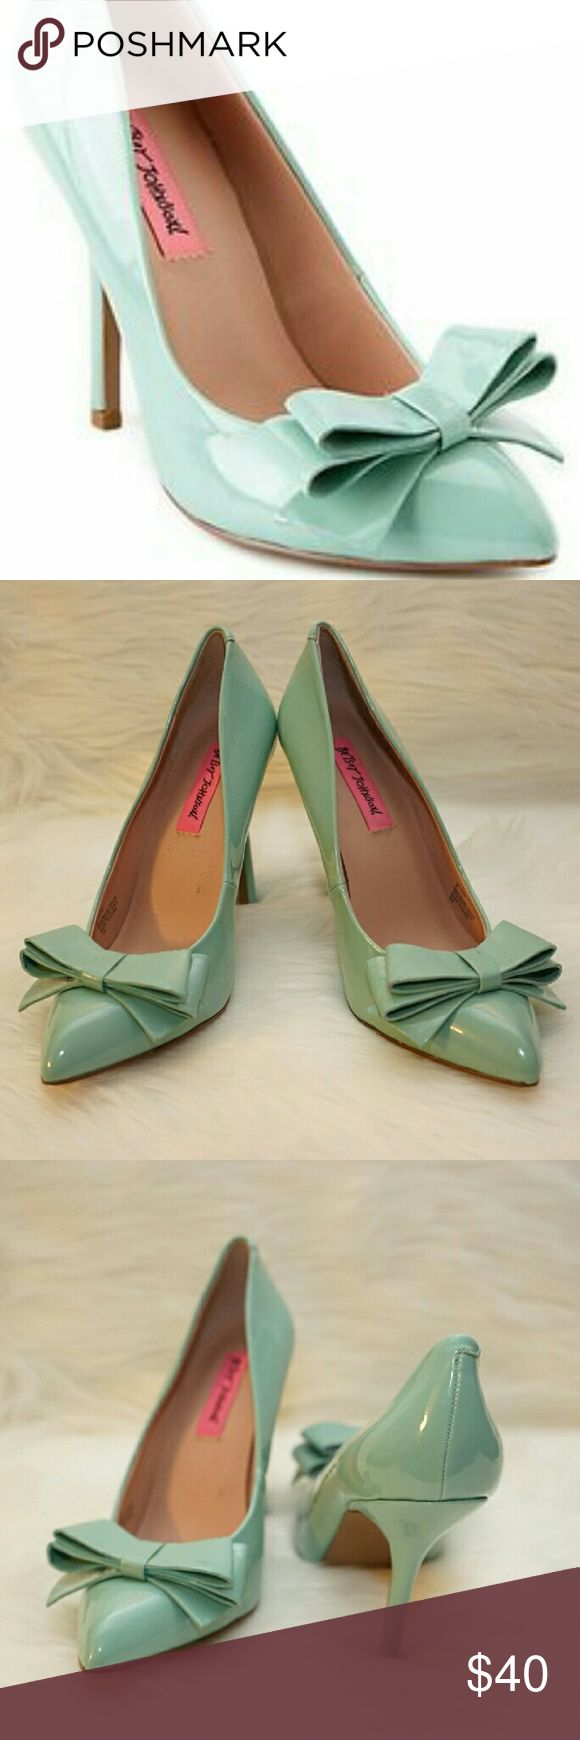 """Betsey Johnson Reload Mint Patent Leather Size 8 Gorgeous mint pumps with bow details perfect for spring and summer. Worn only once in excellent condition. 4""""heel.  PS.  Riley Perrin (Chelsea Kane) wears these mint bow heels in the episode of Baby Daddy. Betsey Johnson Shoes Heels"""